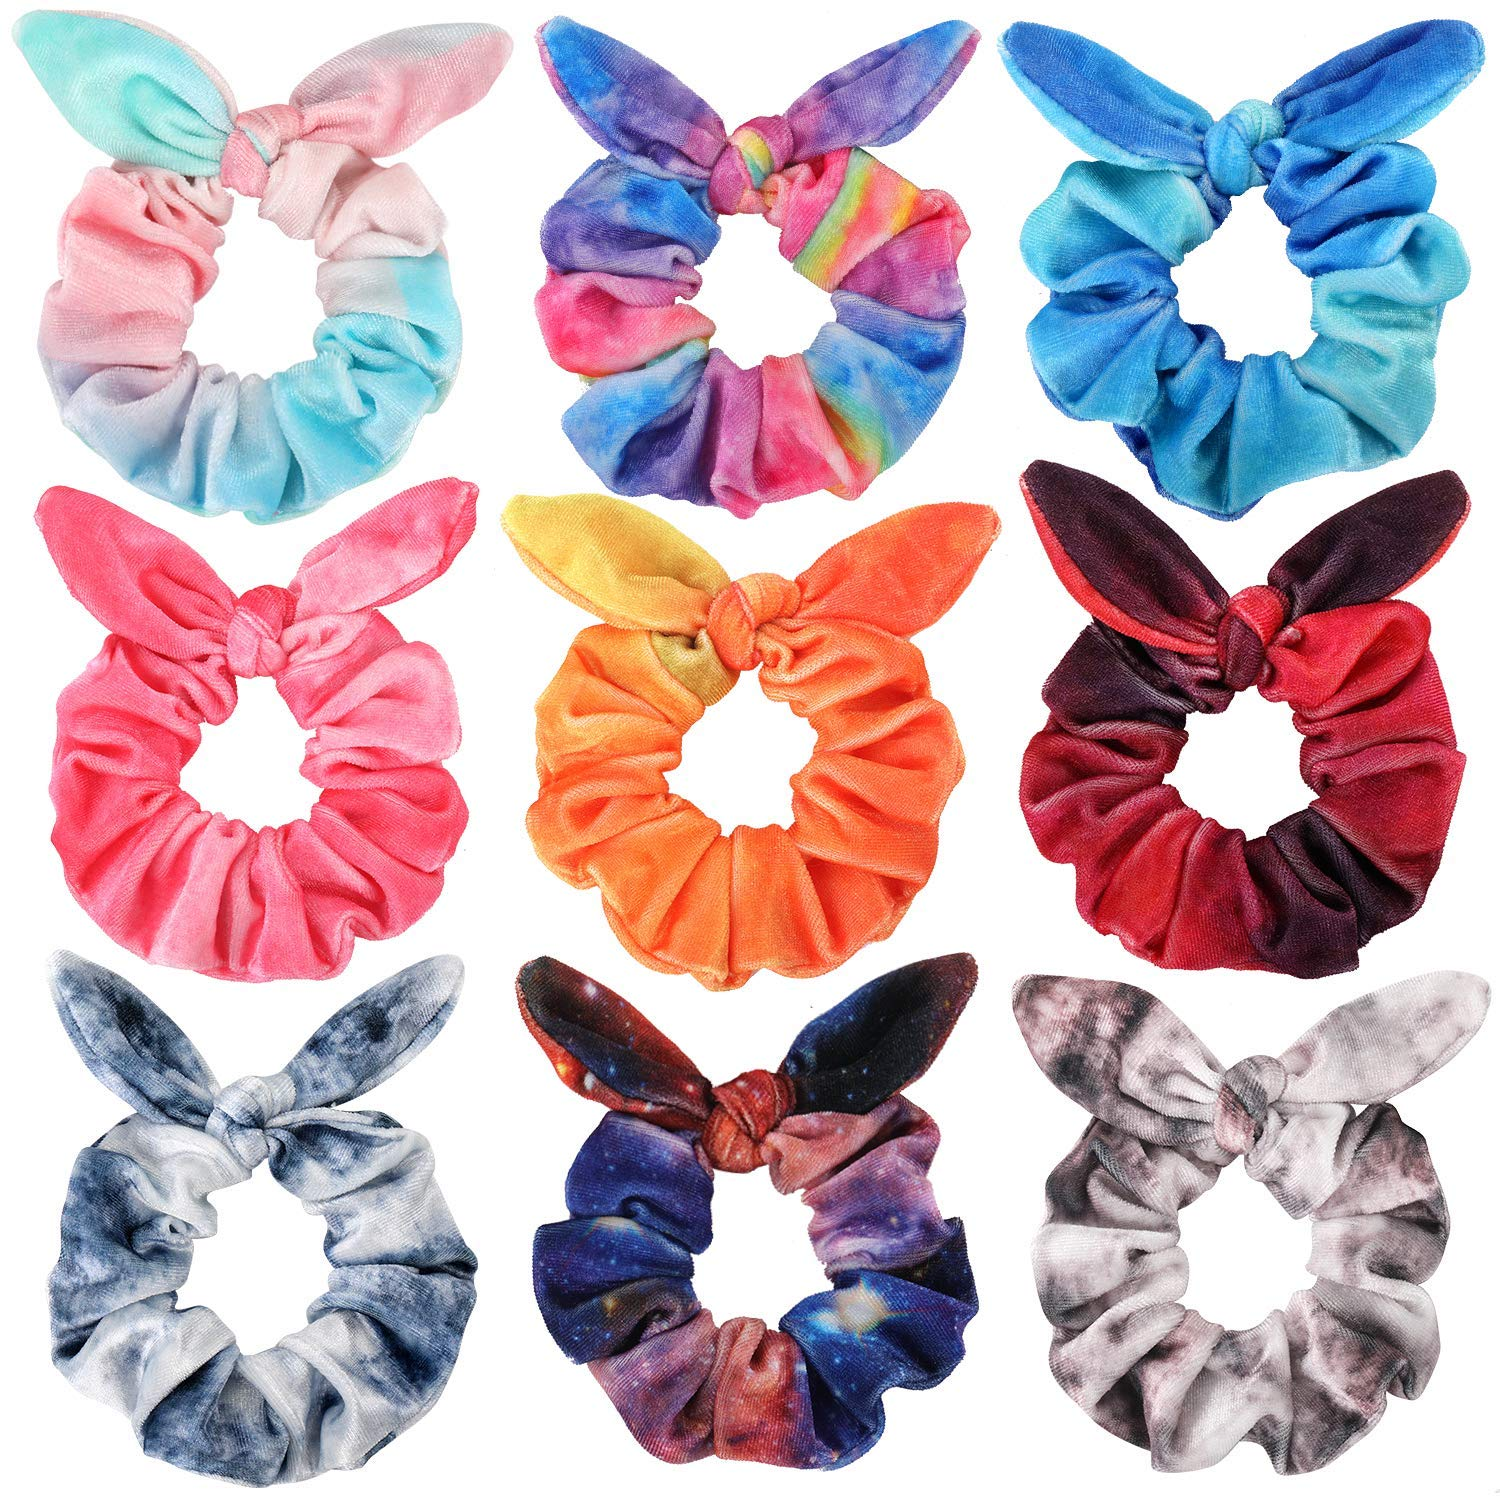 Hair Clips to keep small things Hide substances Clips of hair ties Hair Clips Rave Festival hair Clips camouflage